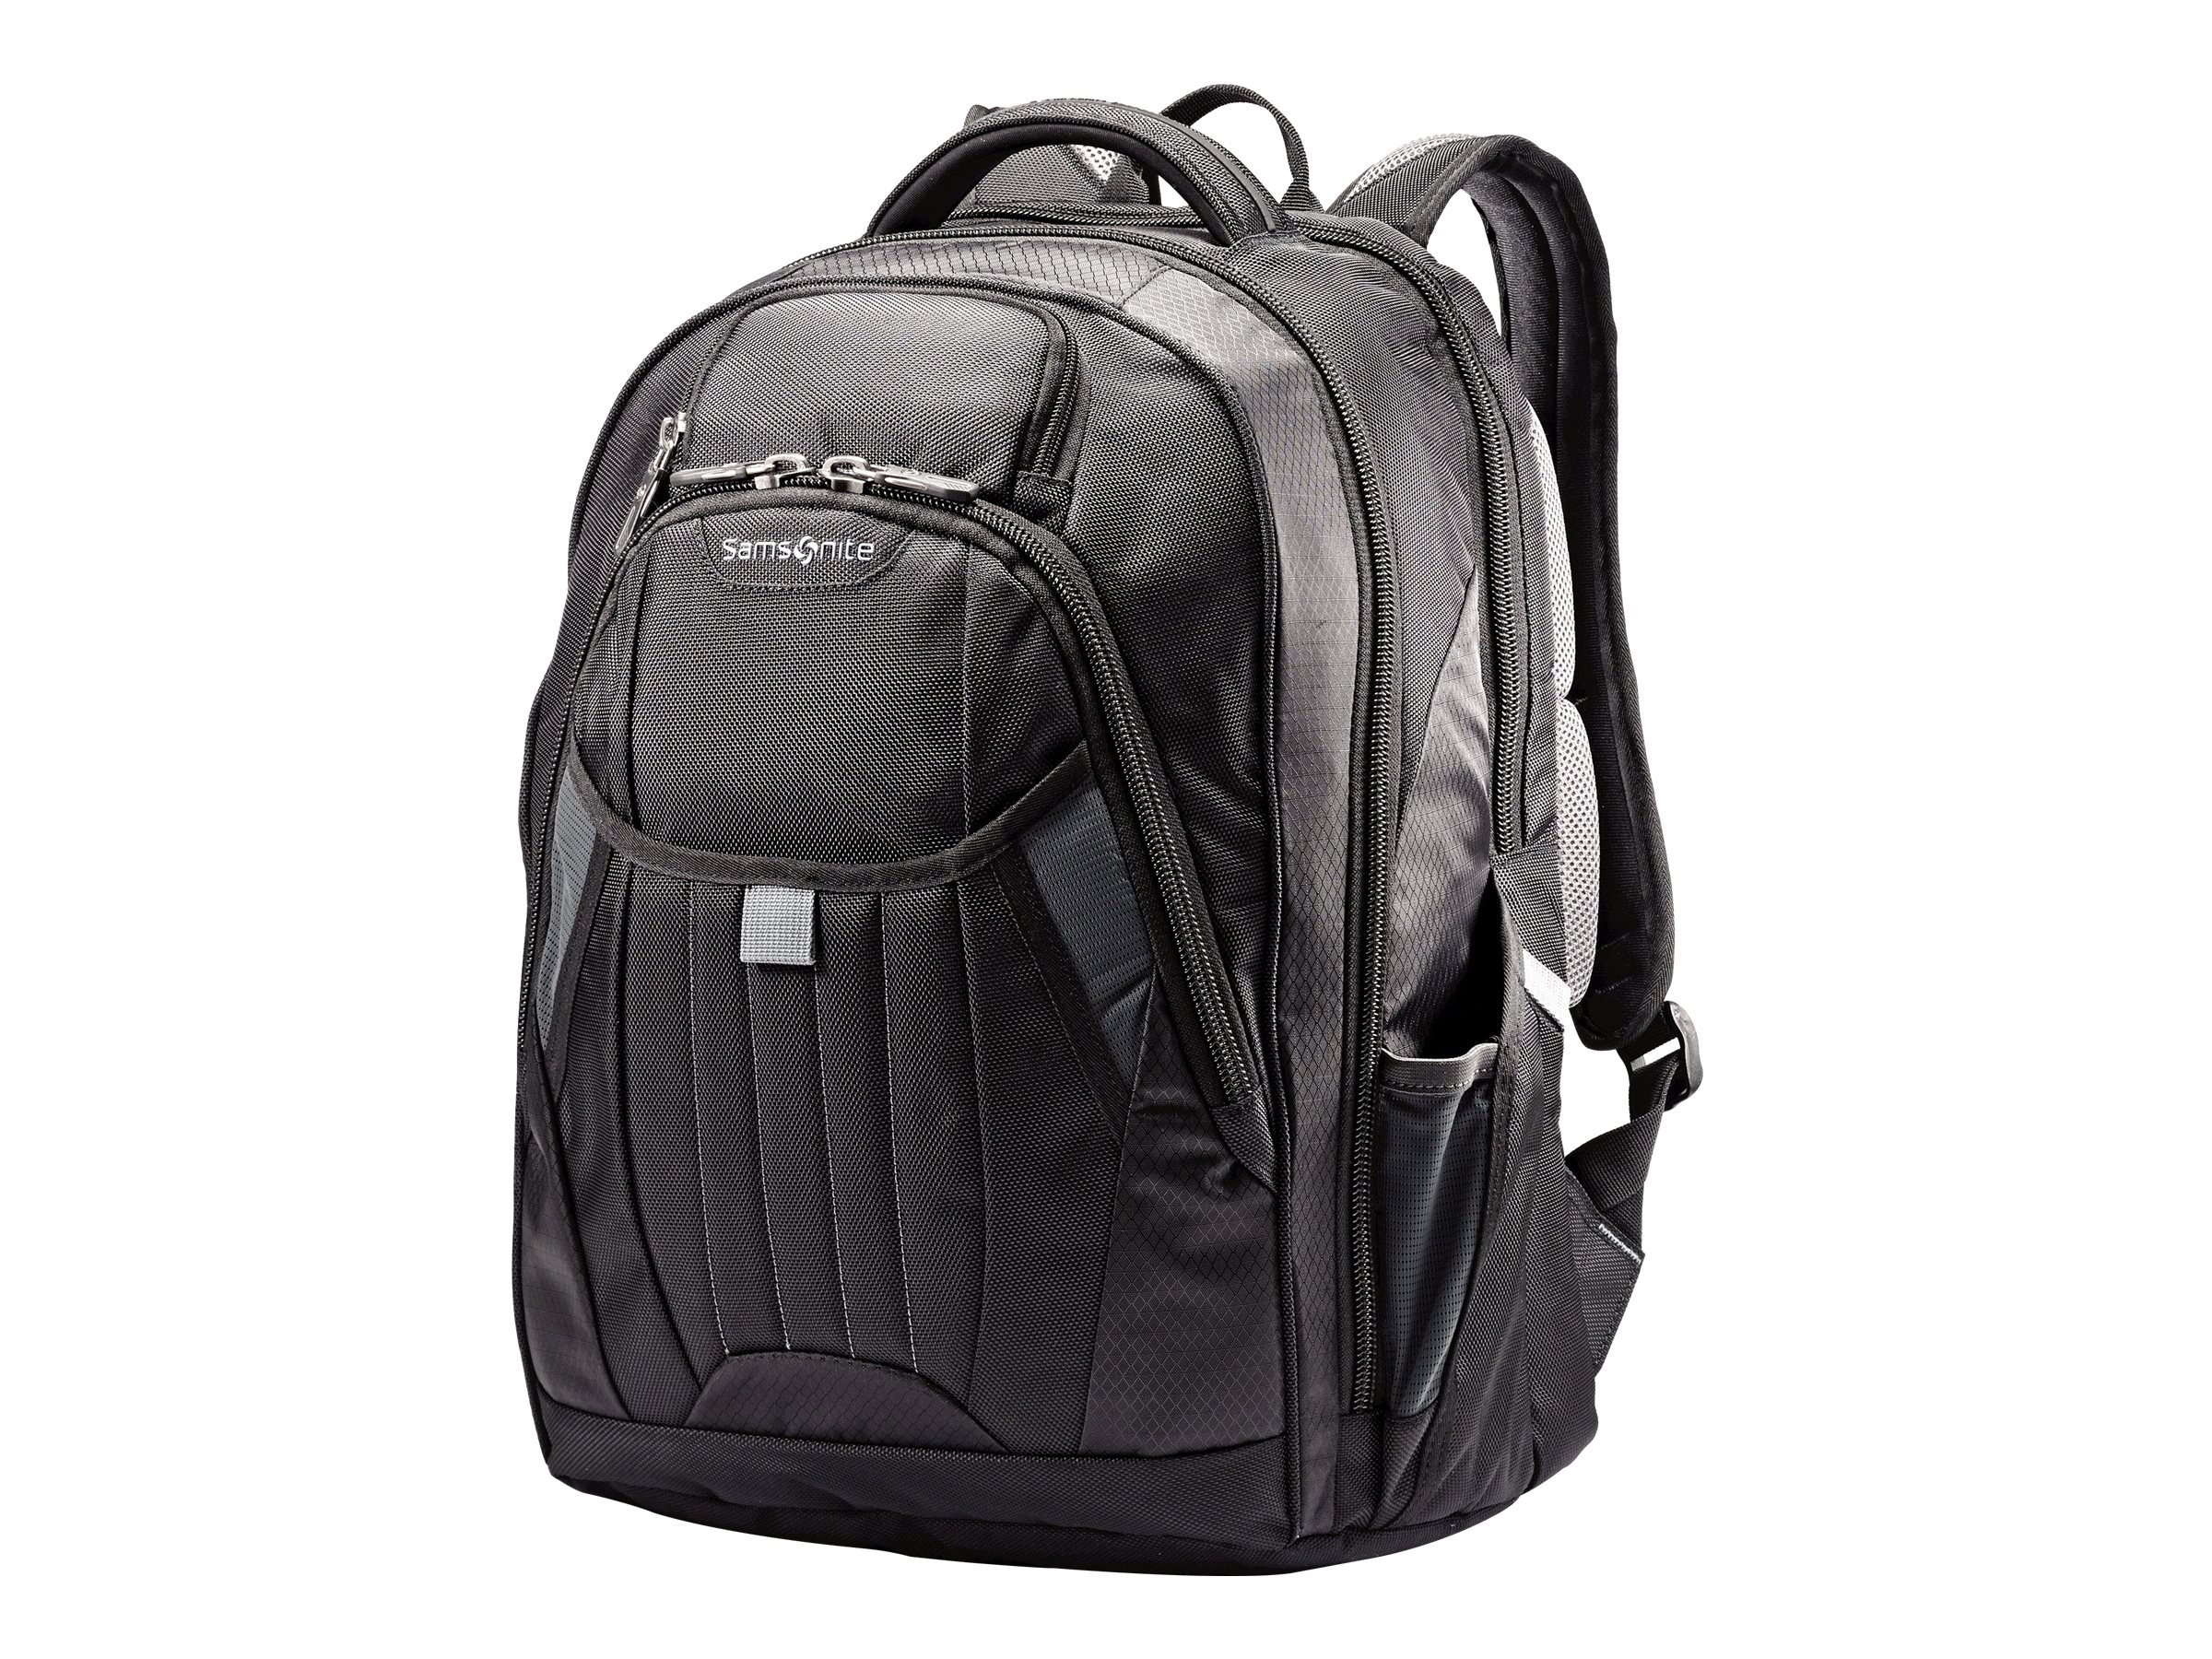 Stephen Gould Tectonic 2 Large Backpack 17, Black Black, 66303-1041